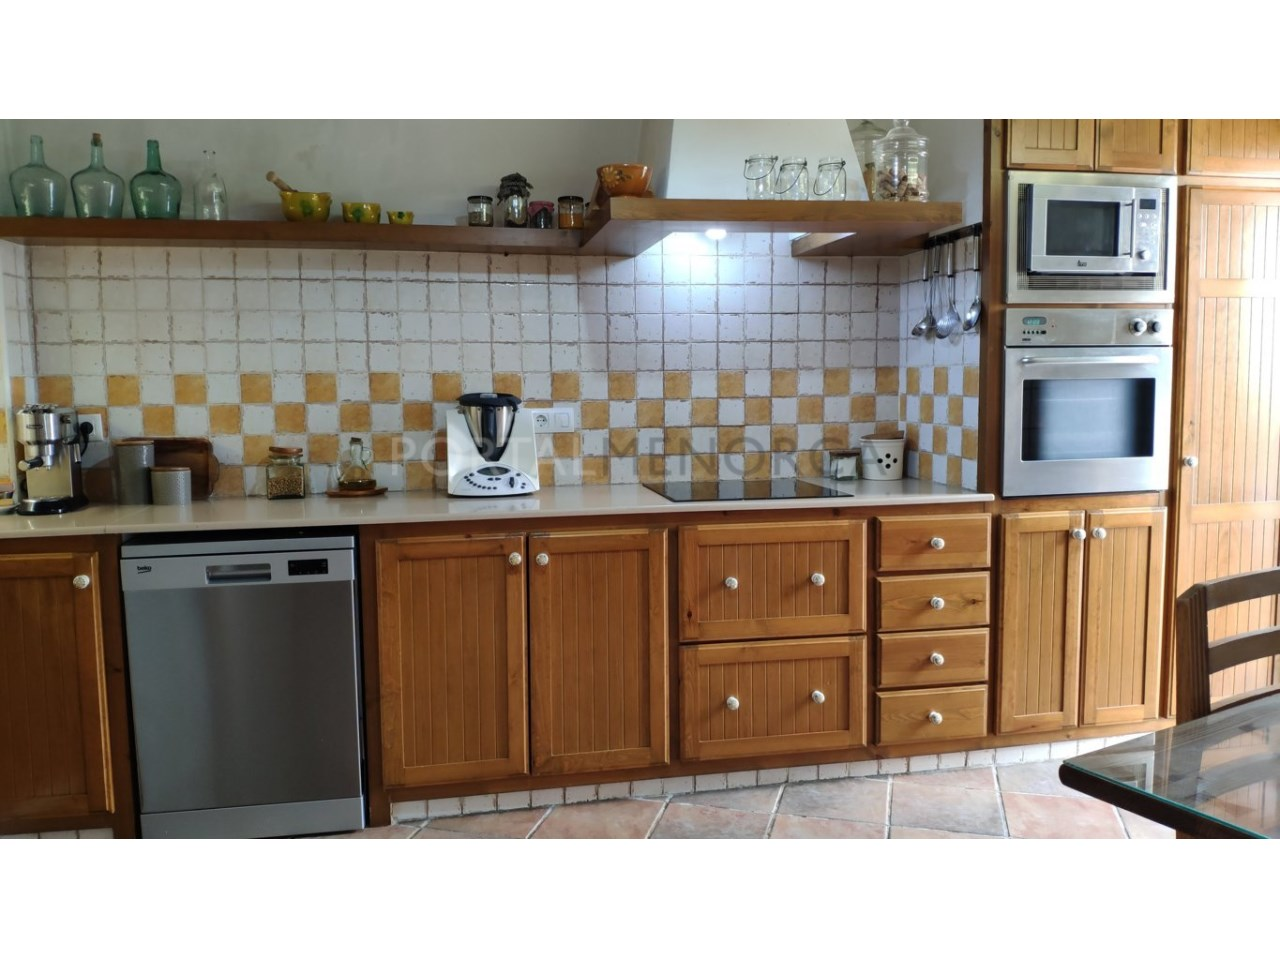 House for sale in the old town of Ciutadella-Kitchen